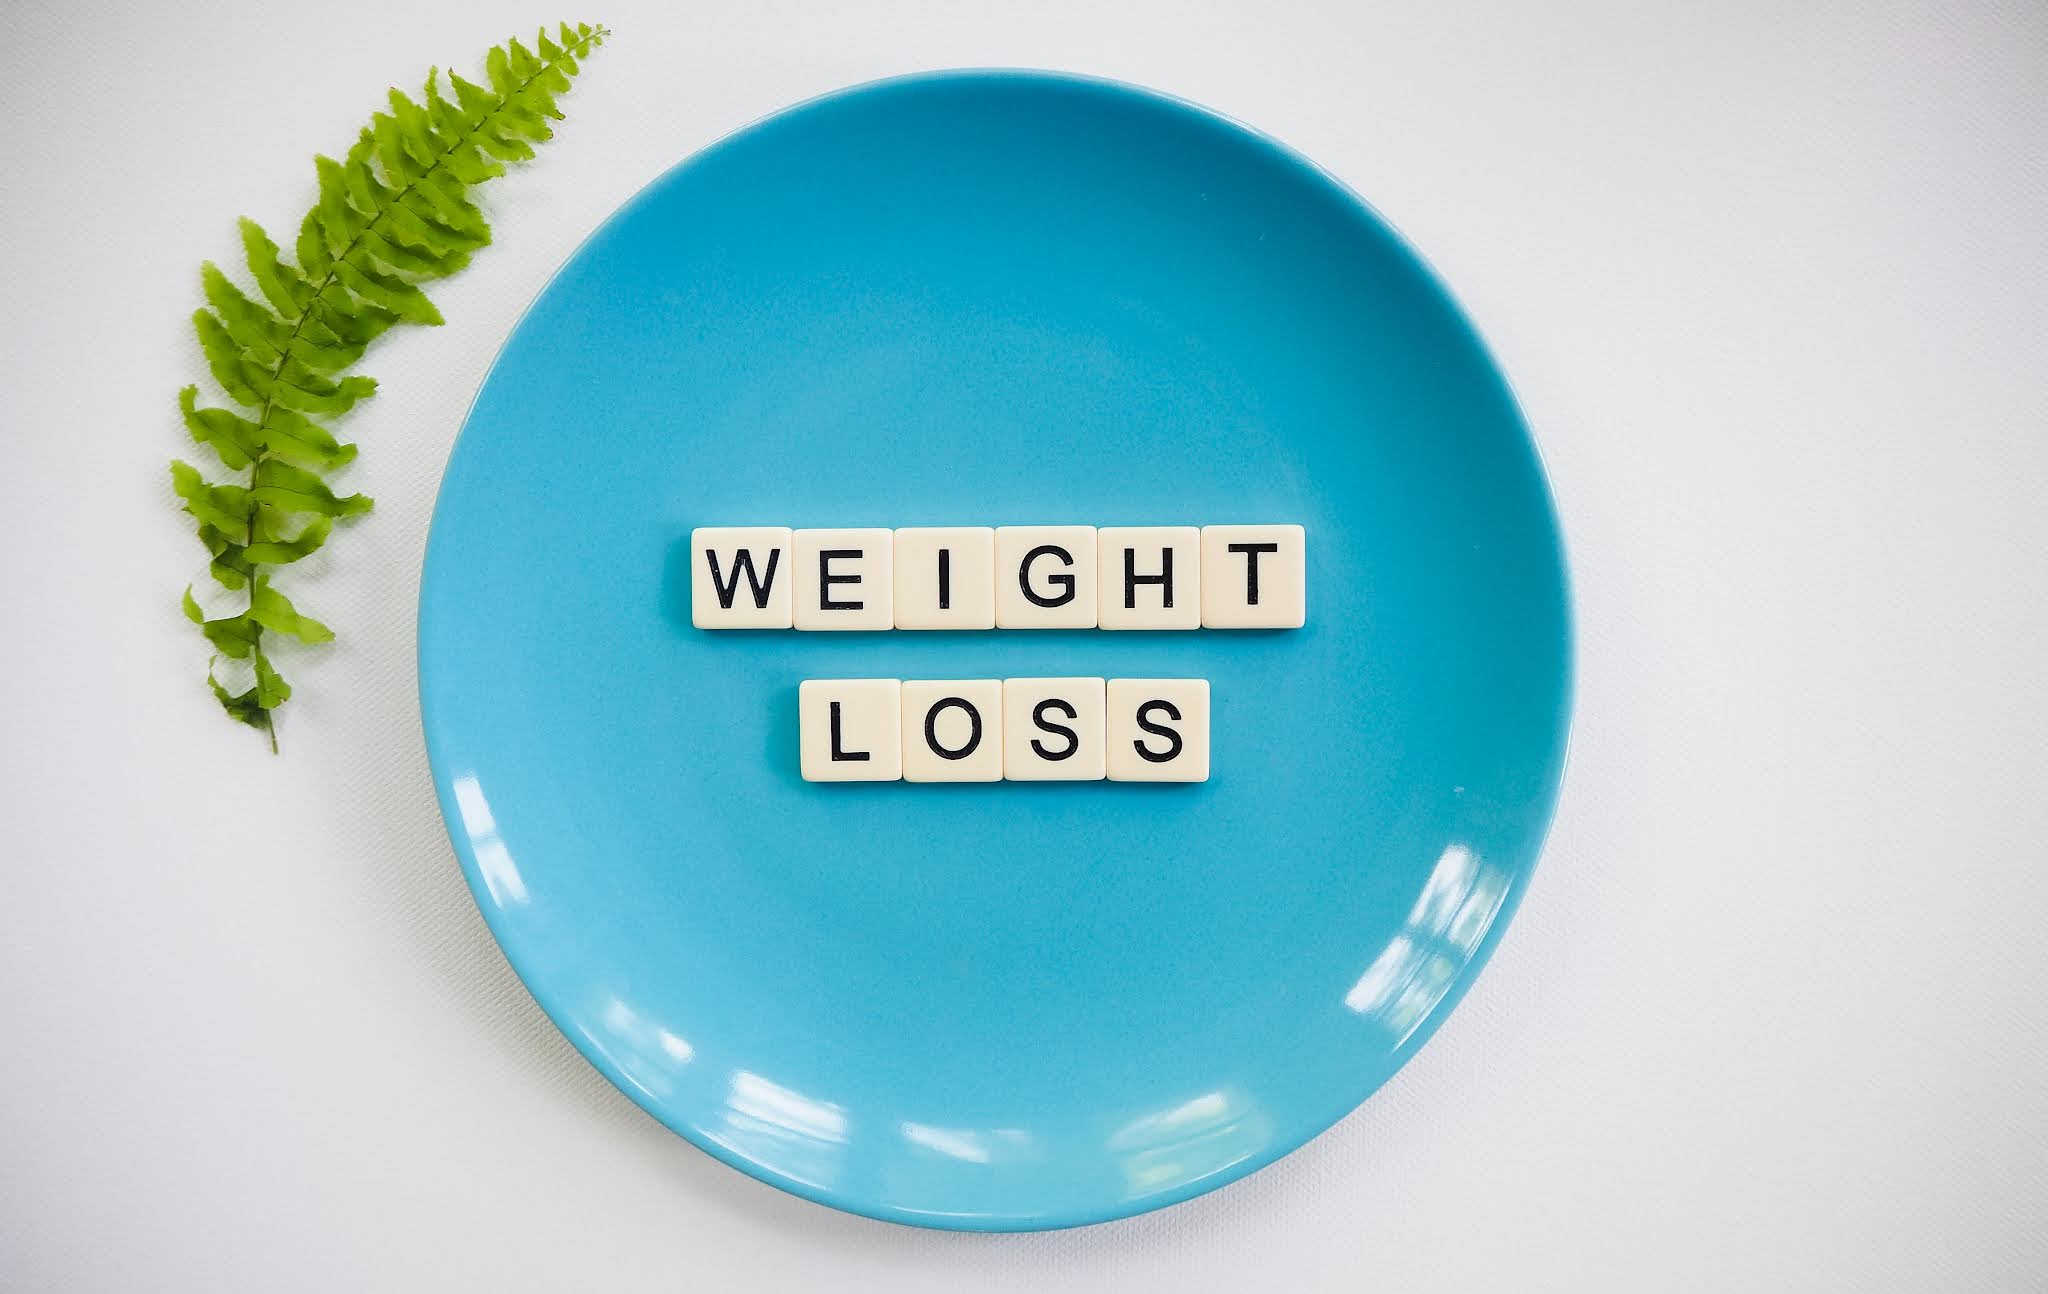 How To Get Rid of Belly Fat: 6 Simple Steps To Help You Lose Weight